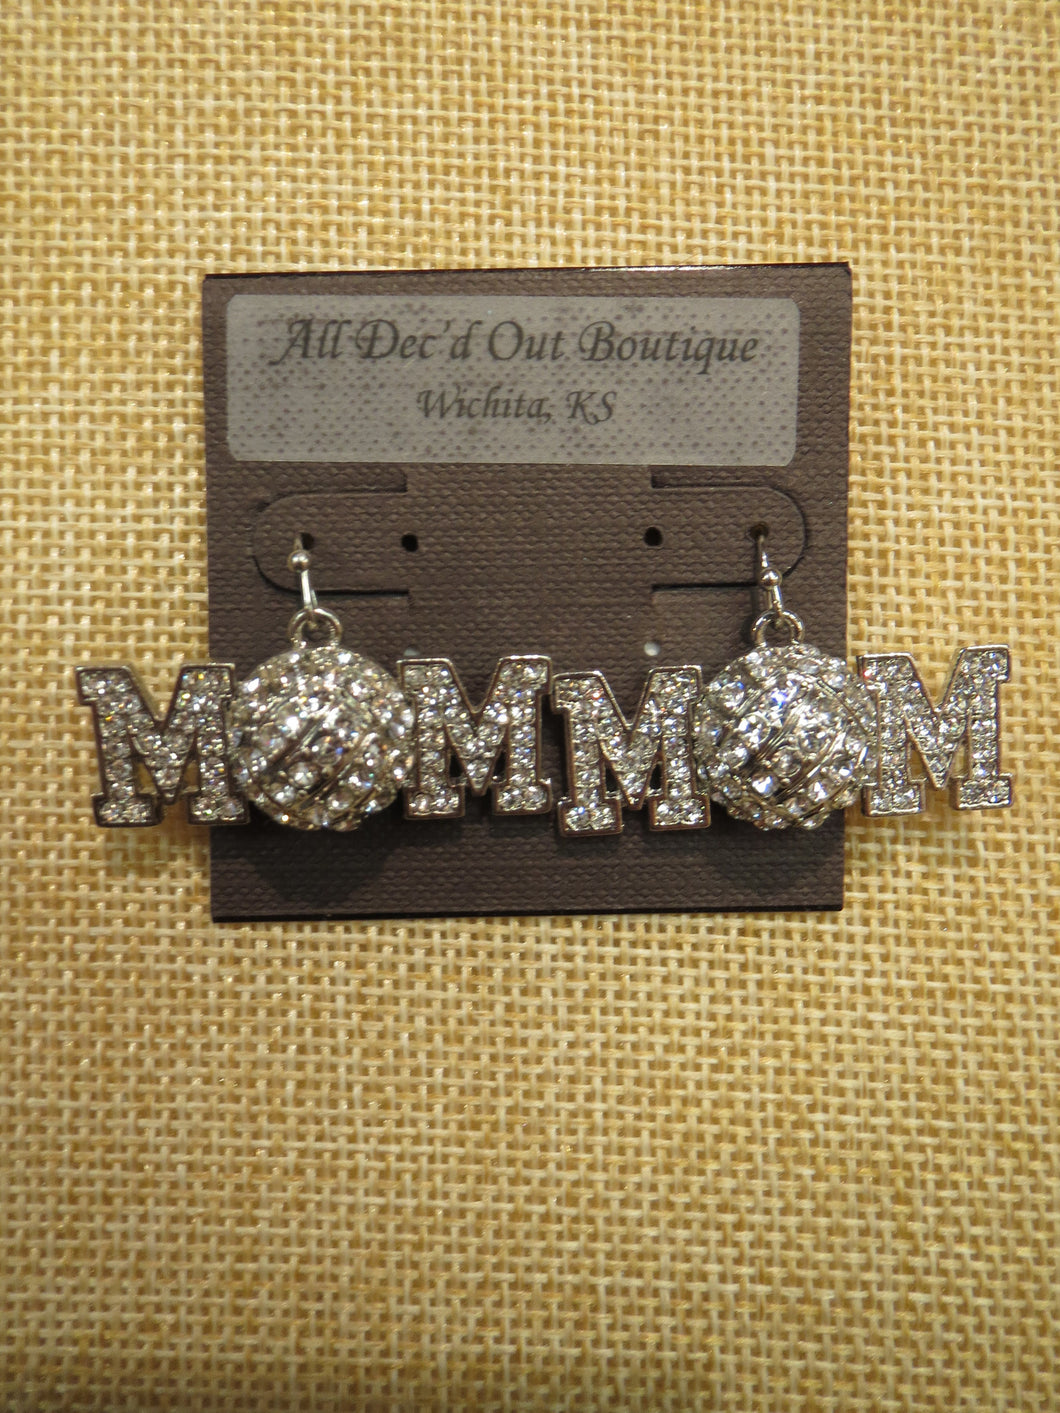 ADO | Hometown Pride Volleyball Mom Earrings - All Decd Out